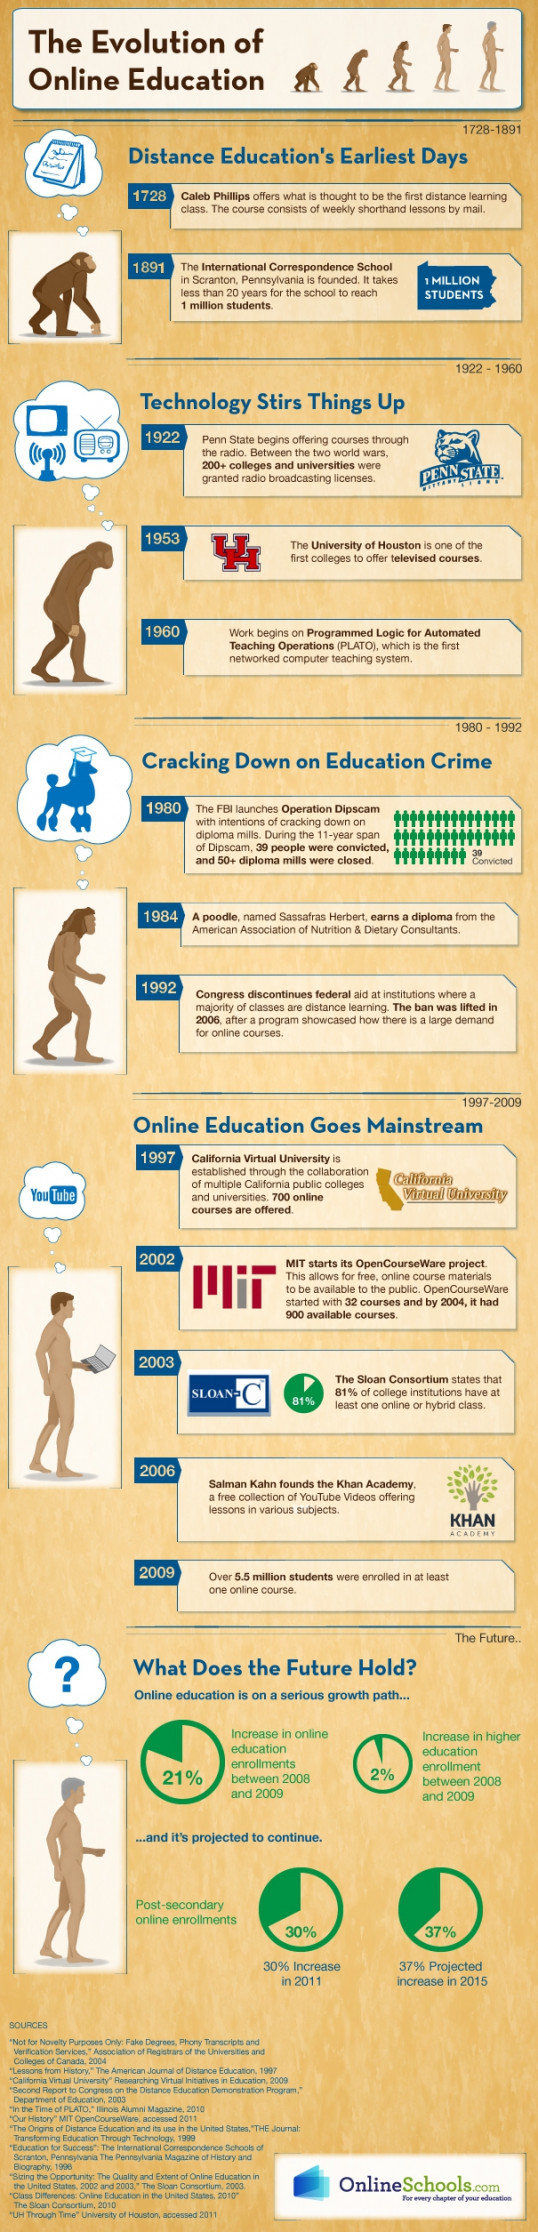 The Evolution of Online Education